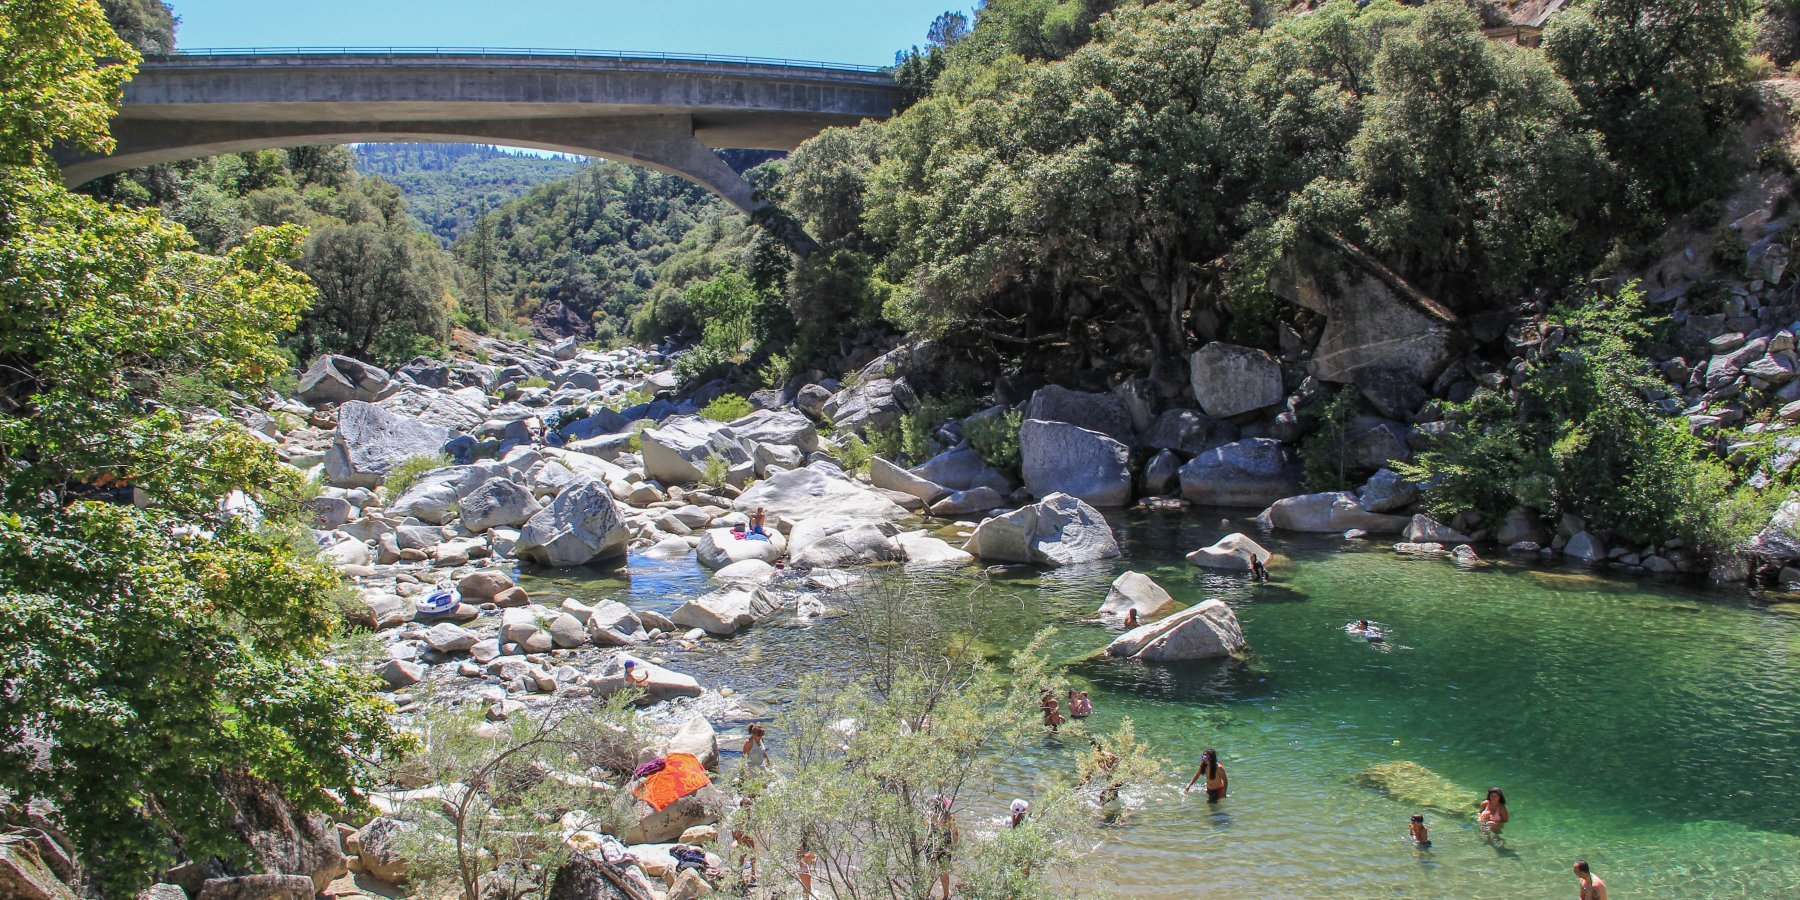 14 Incredible Swimming Holes in Northern California - 7x7 Bay Area